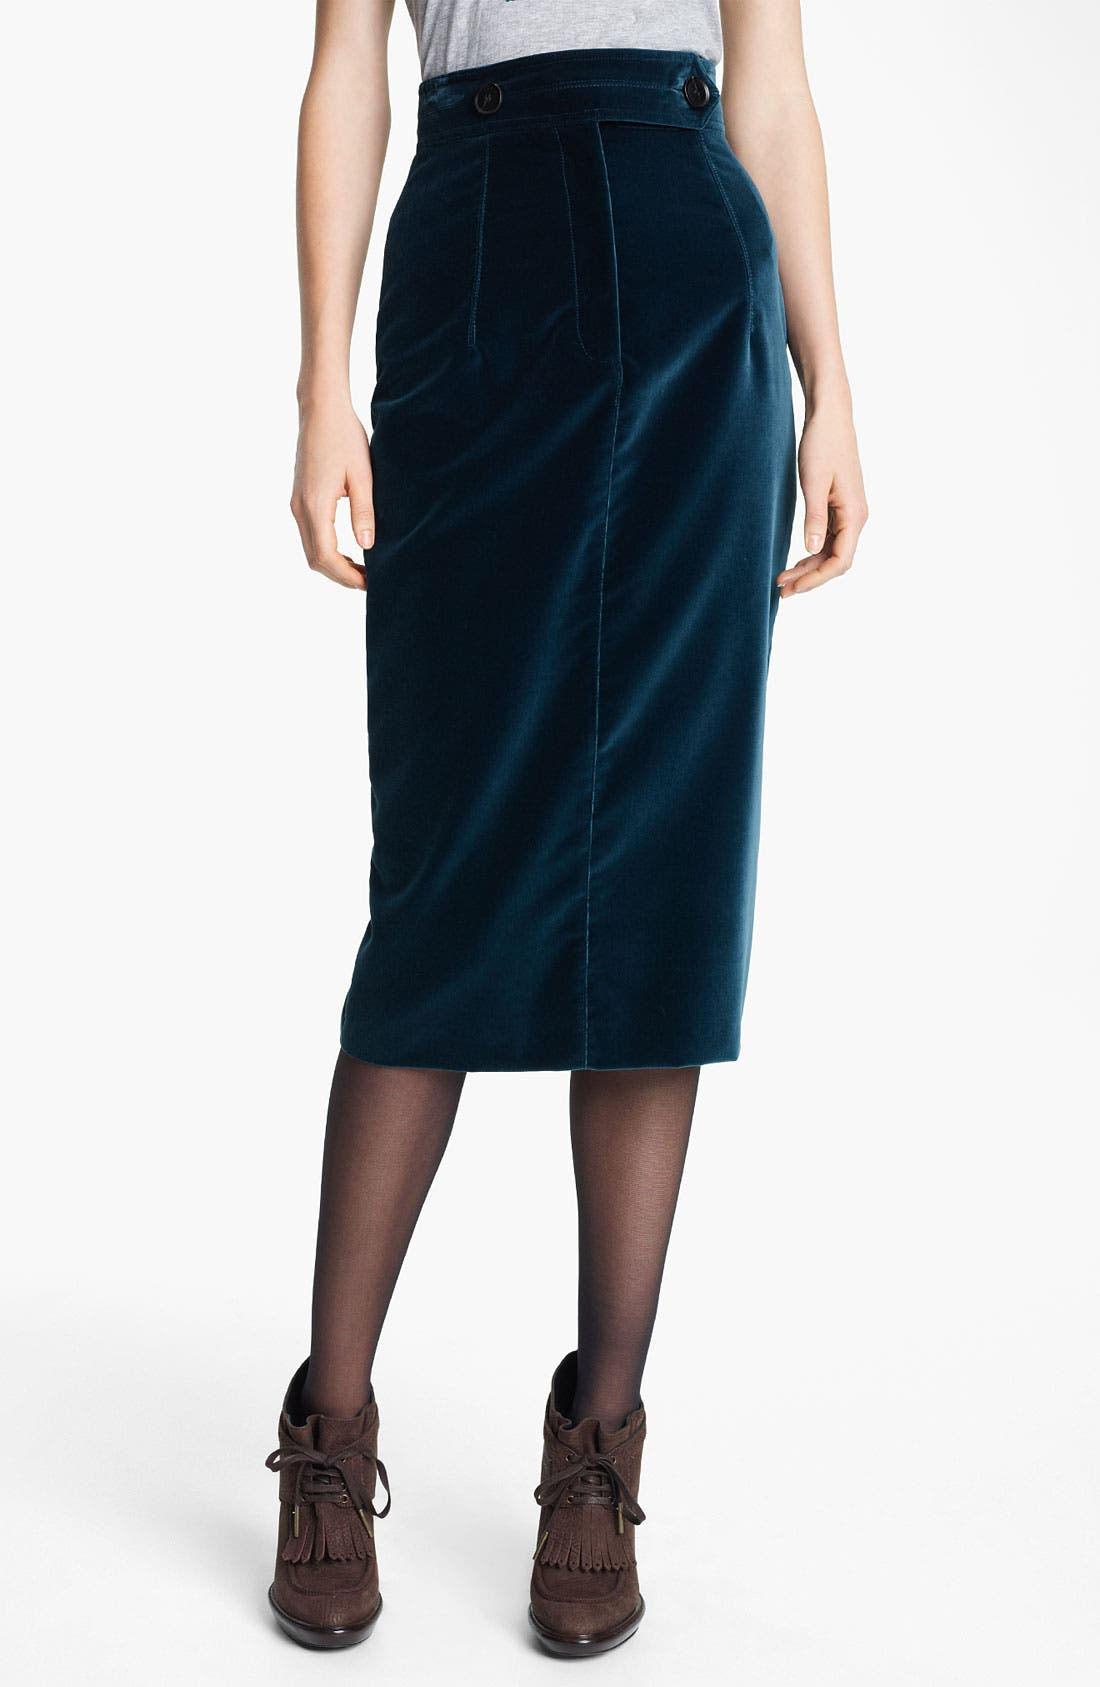 Alternate Image 1 Selected - Burberry Prorsum Velvet Pencil Skirt